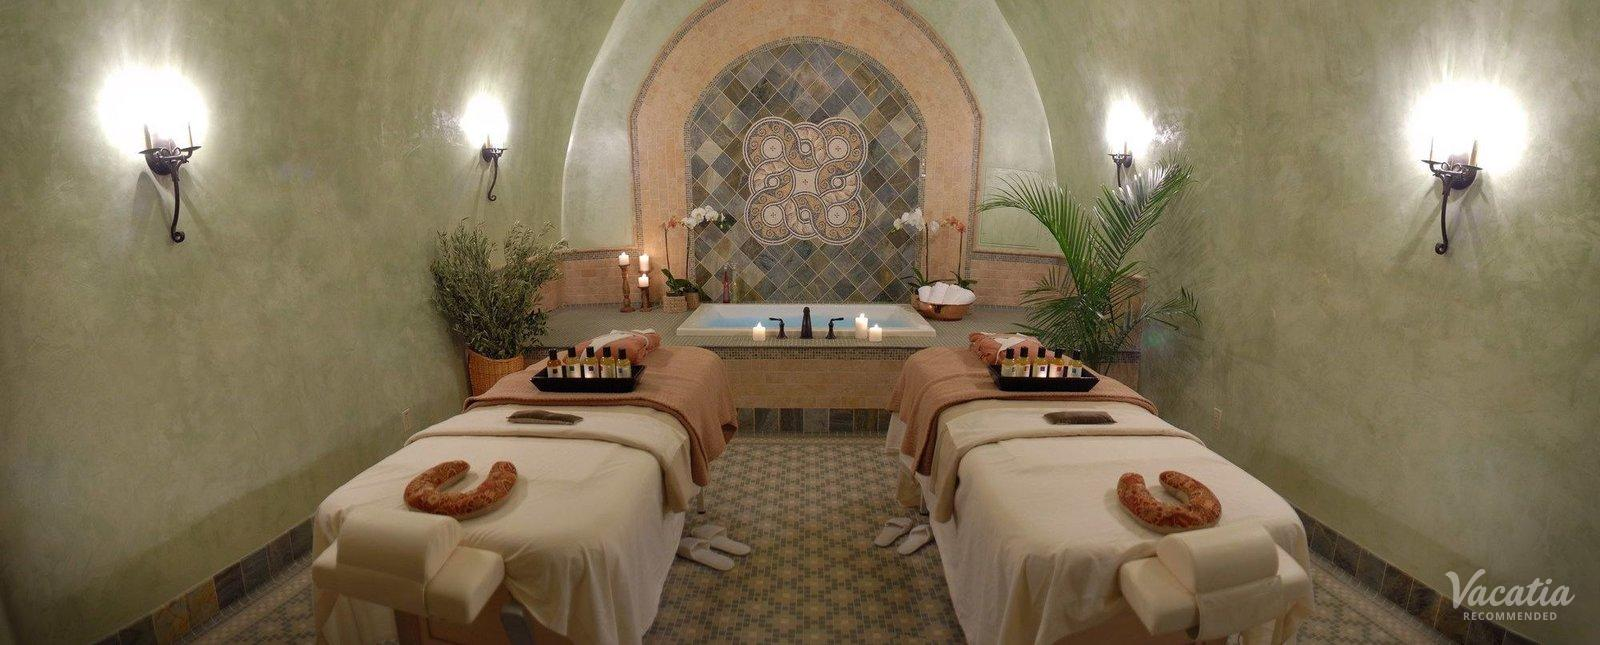 Vino Bello Resort Napa Spa